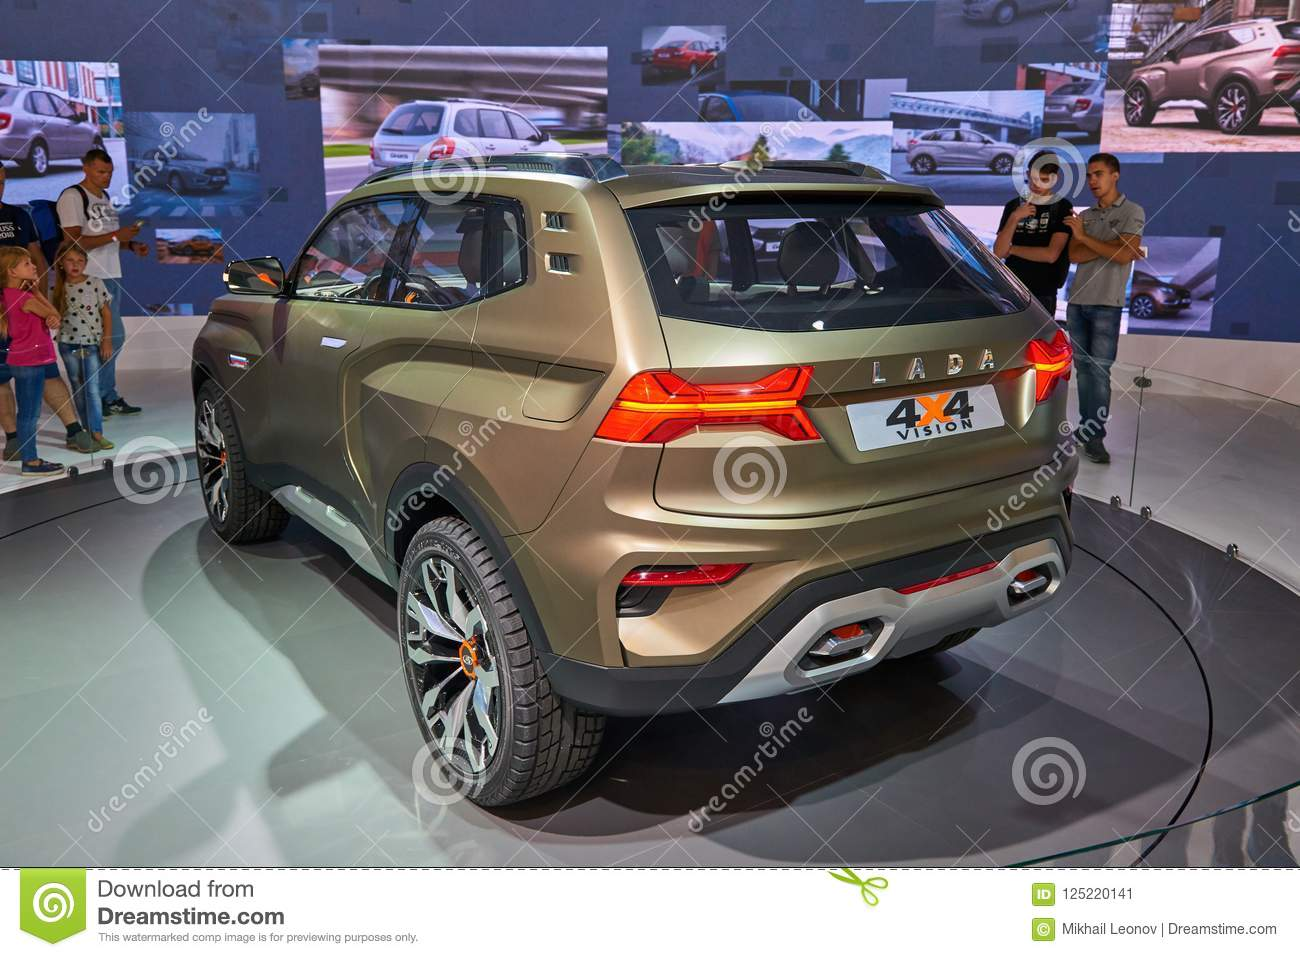 moscow, aug.31, 2018: view on lada stand with new concept off road